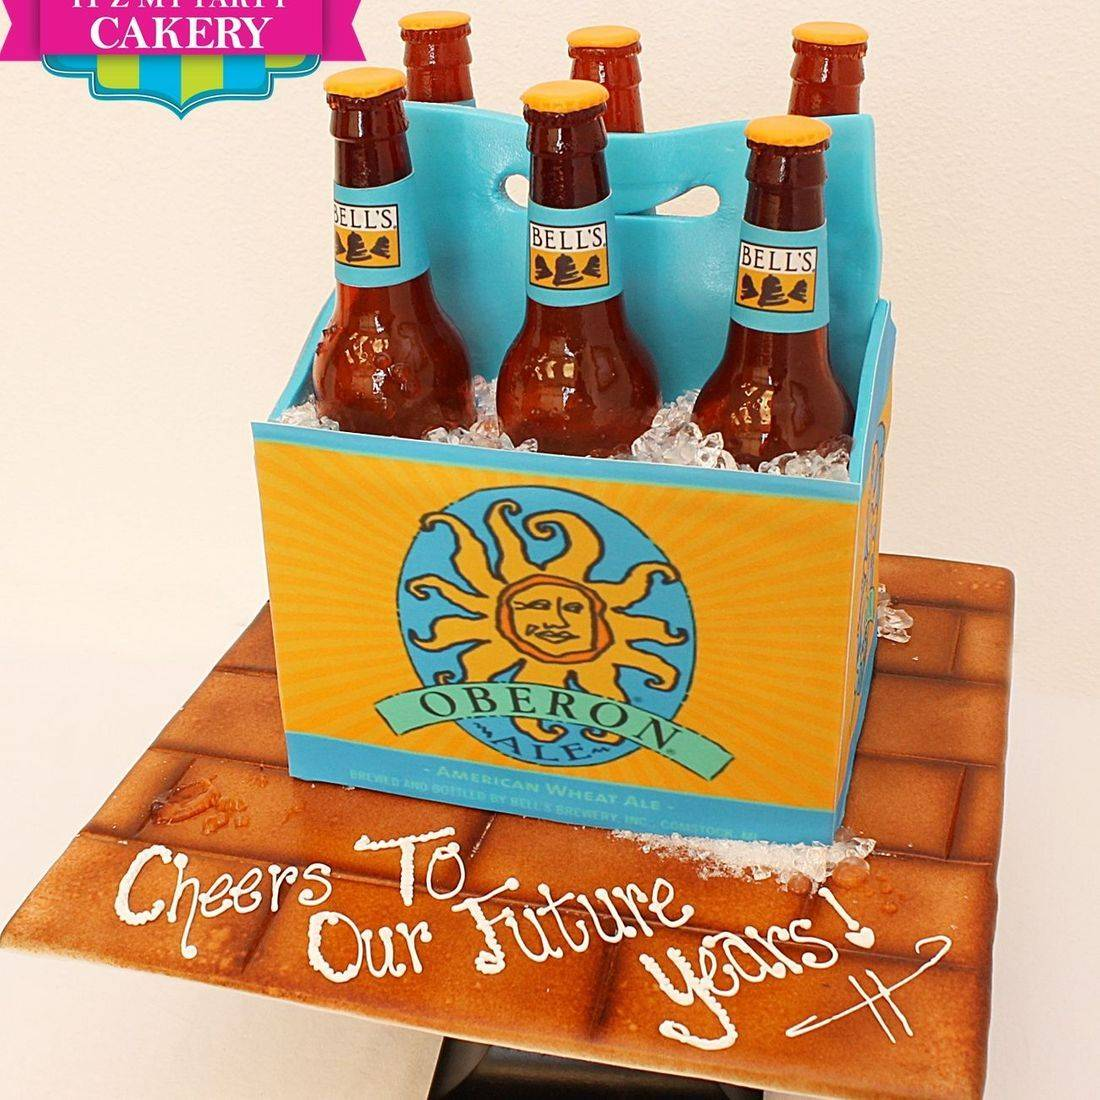 Oberon 6 pk beer Dimensional Cake Milwaukee